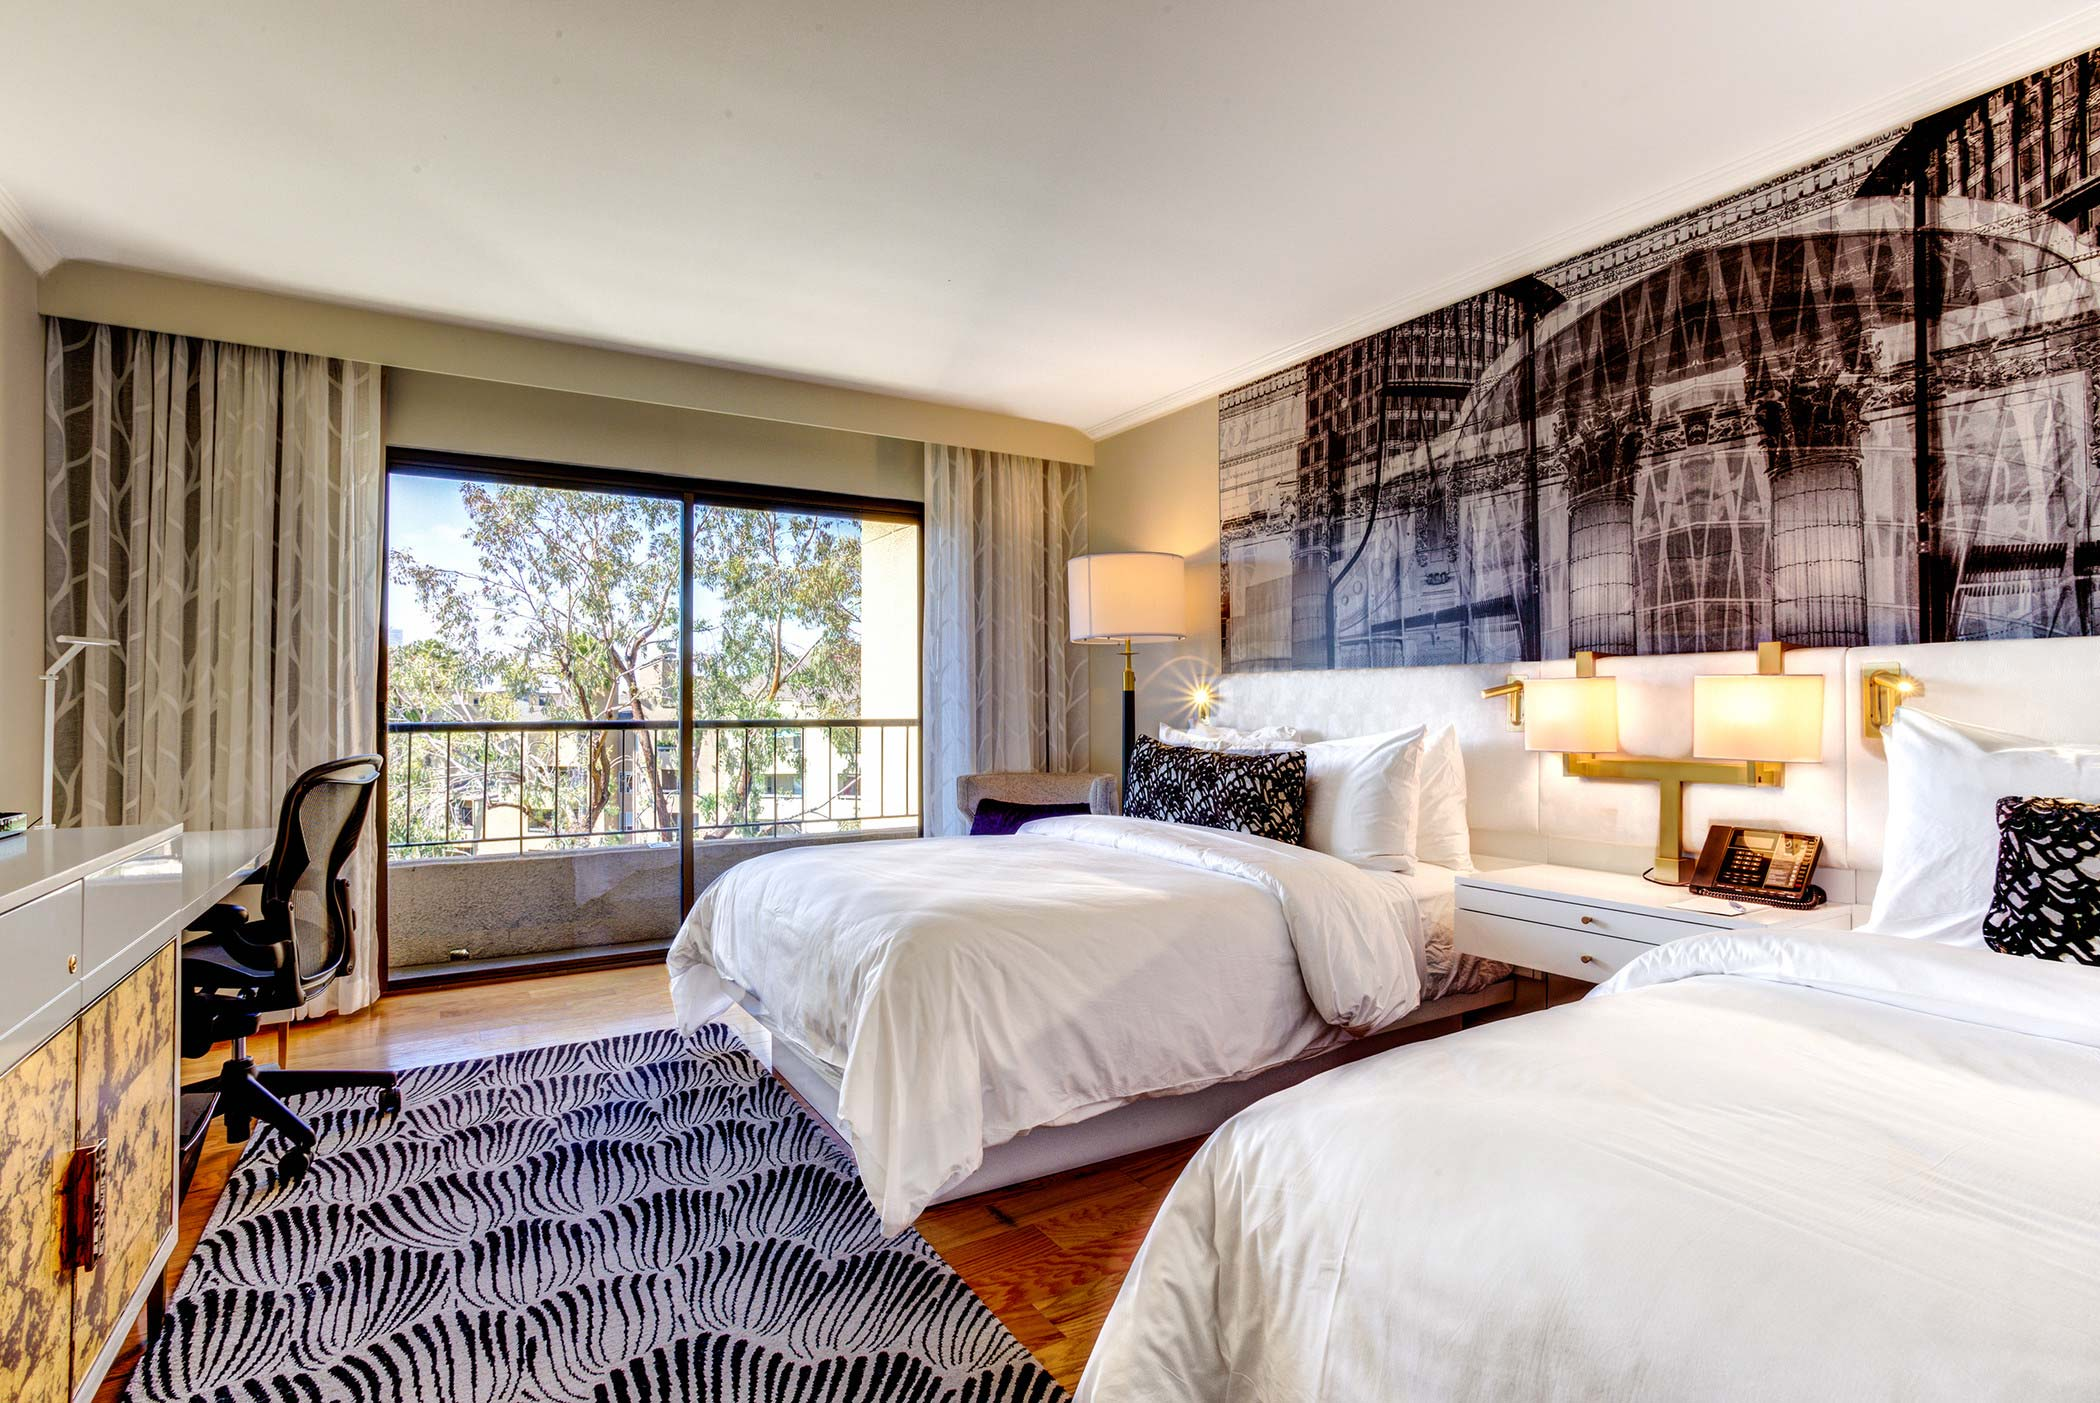 Traditional Queen Room at Avenue of the Arts Costa Mesa